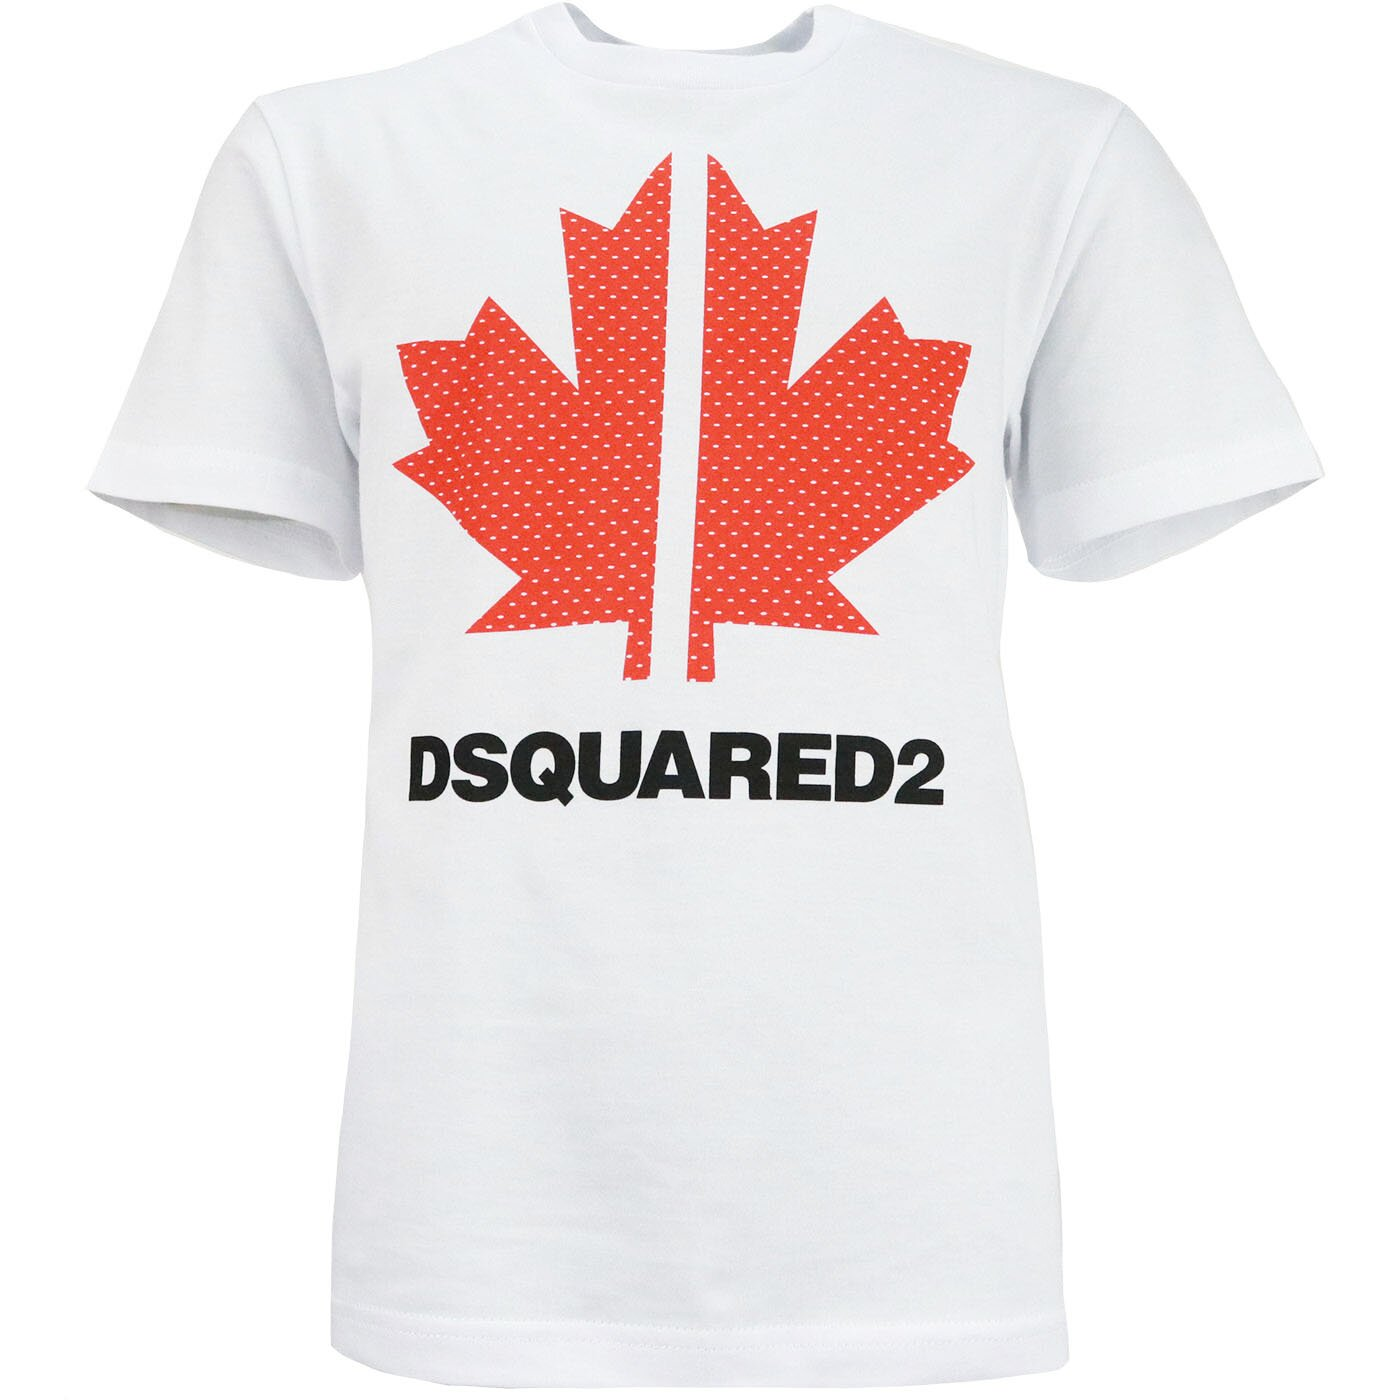 Dsquared2 Shirt Sport Edition Wit Maple DQ0028 Relax Fit